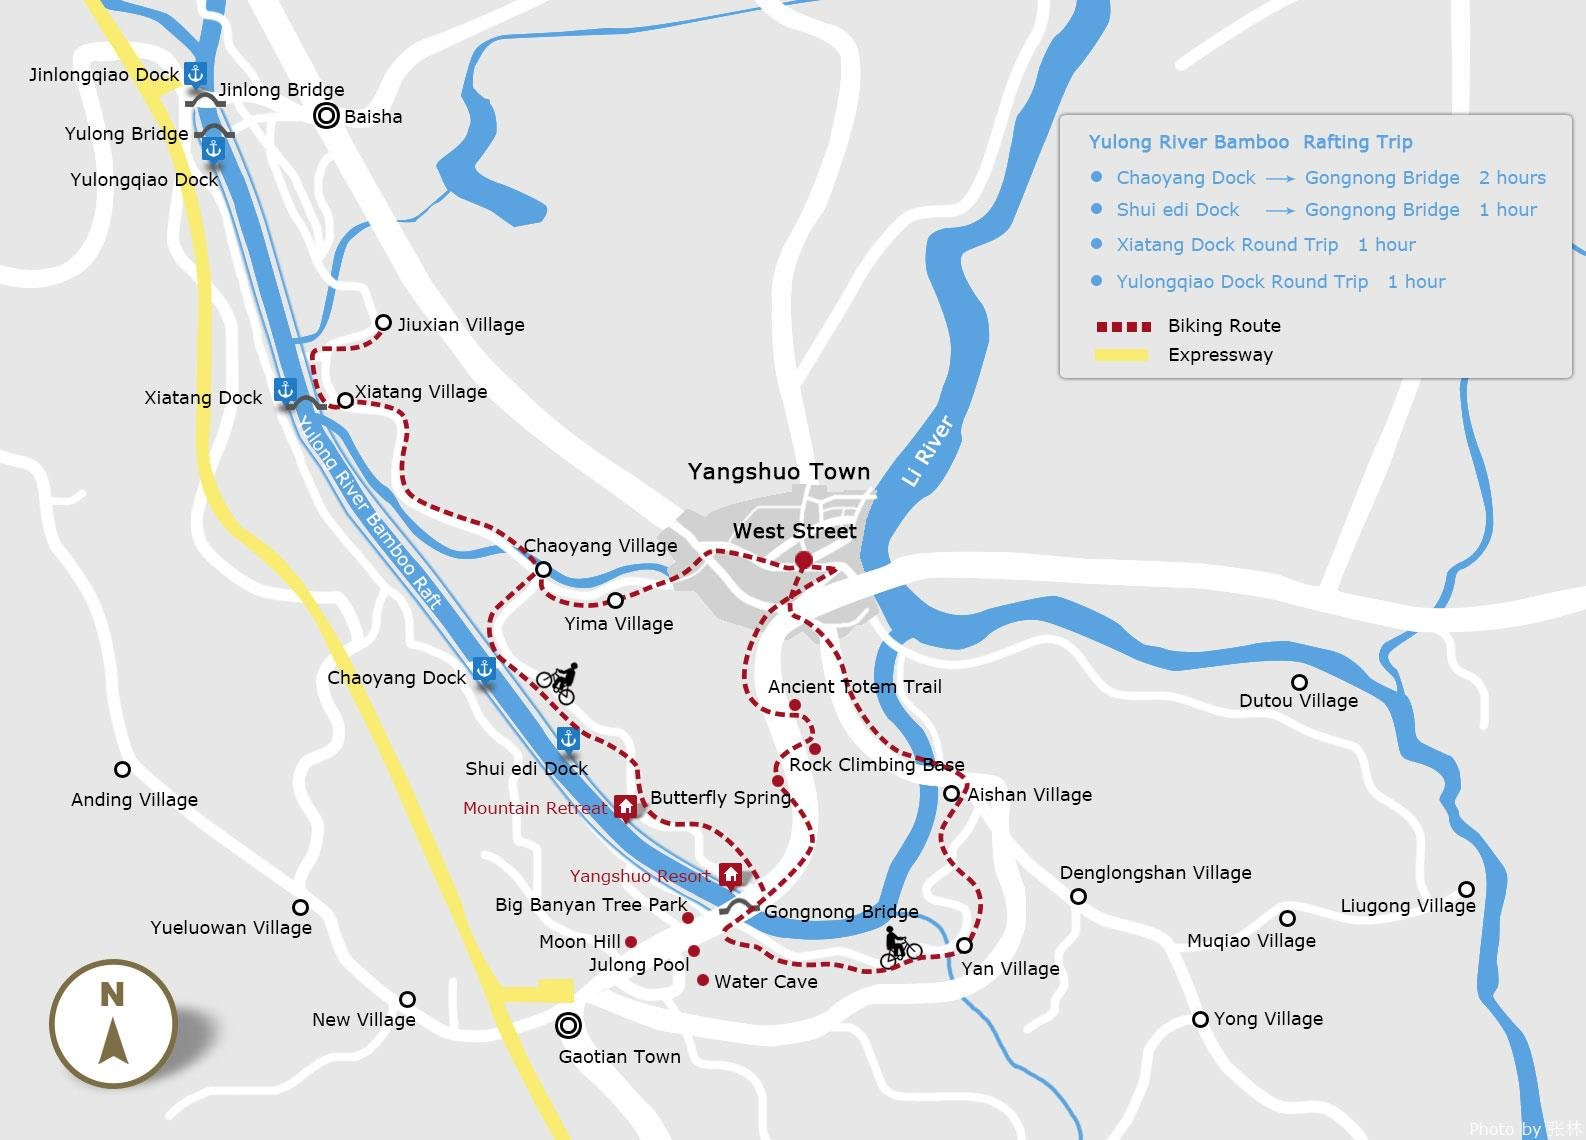 yulong river rafting and biking map